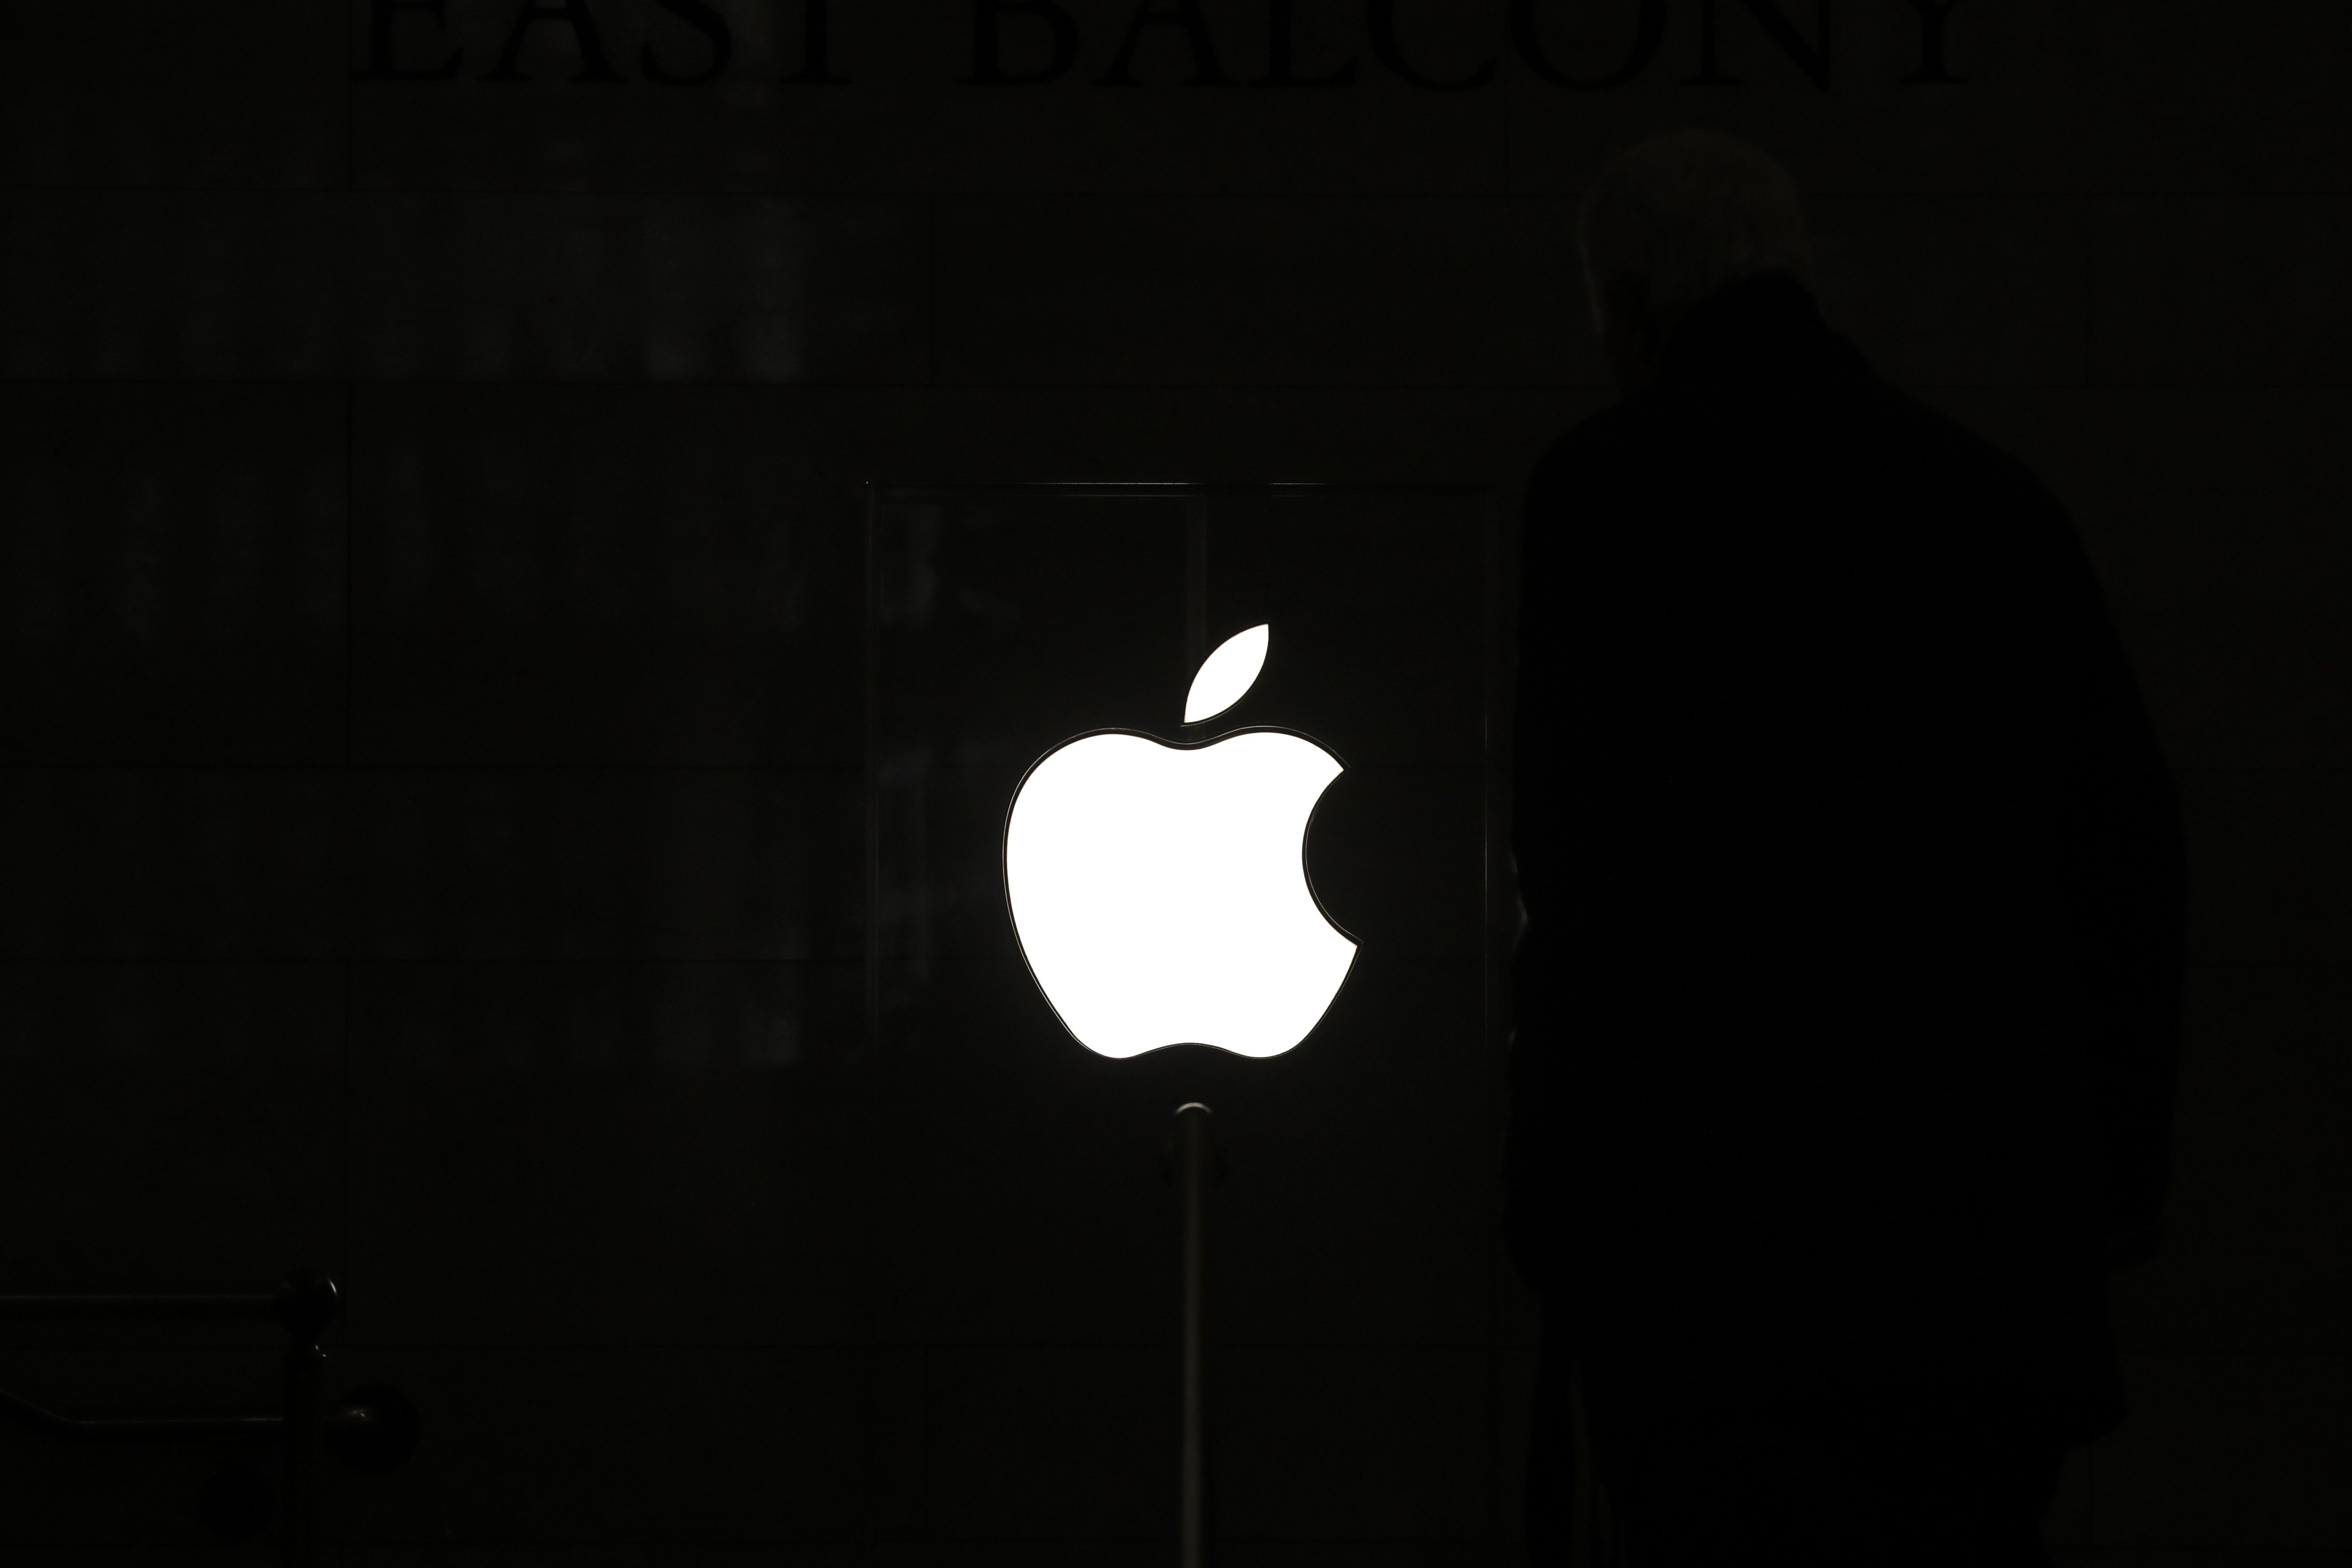 Apple Is Doubling Down on Privacy